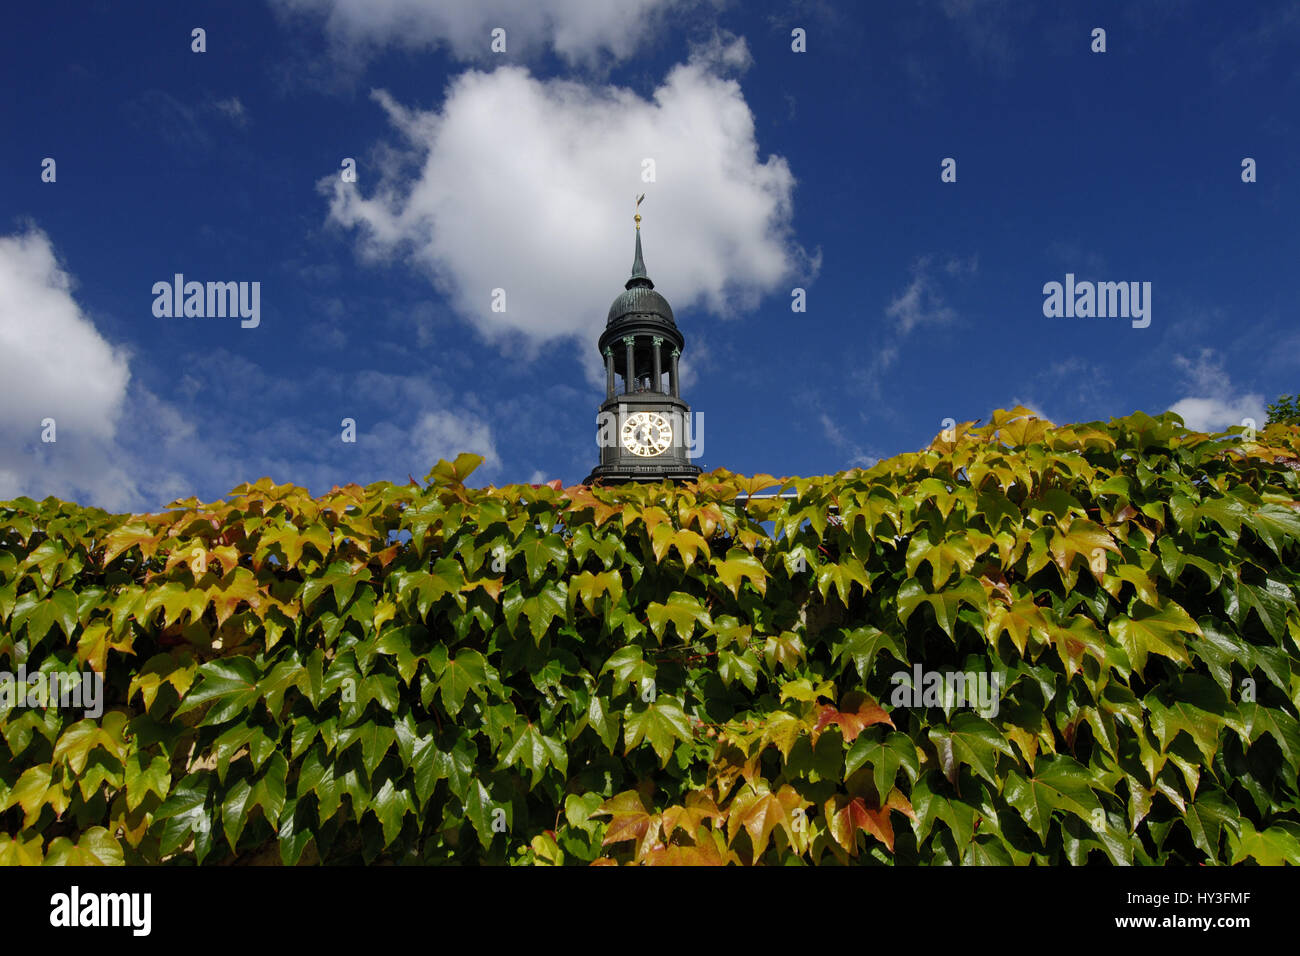 Germany, Hamburg, town, towns, Gro? town, Gro? towns, day, tags¸ber, trip, hamburger, landmark, Sehensw¸rdigkeit, Stock Photo